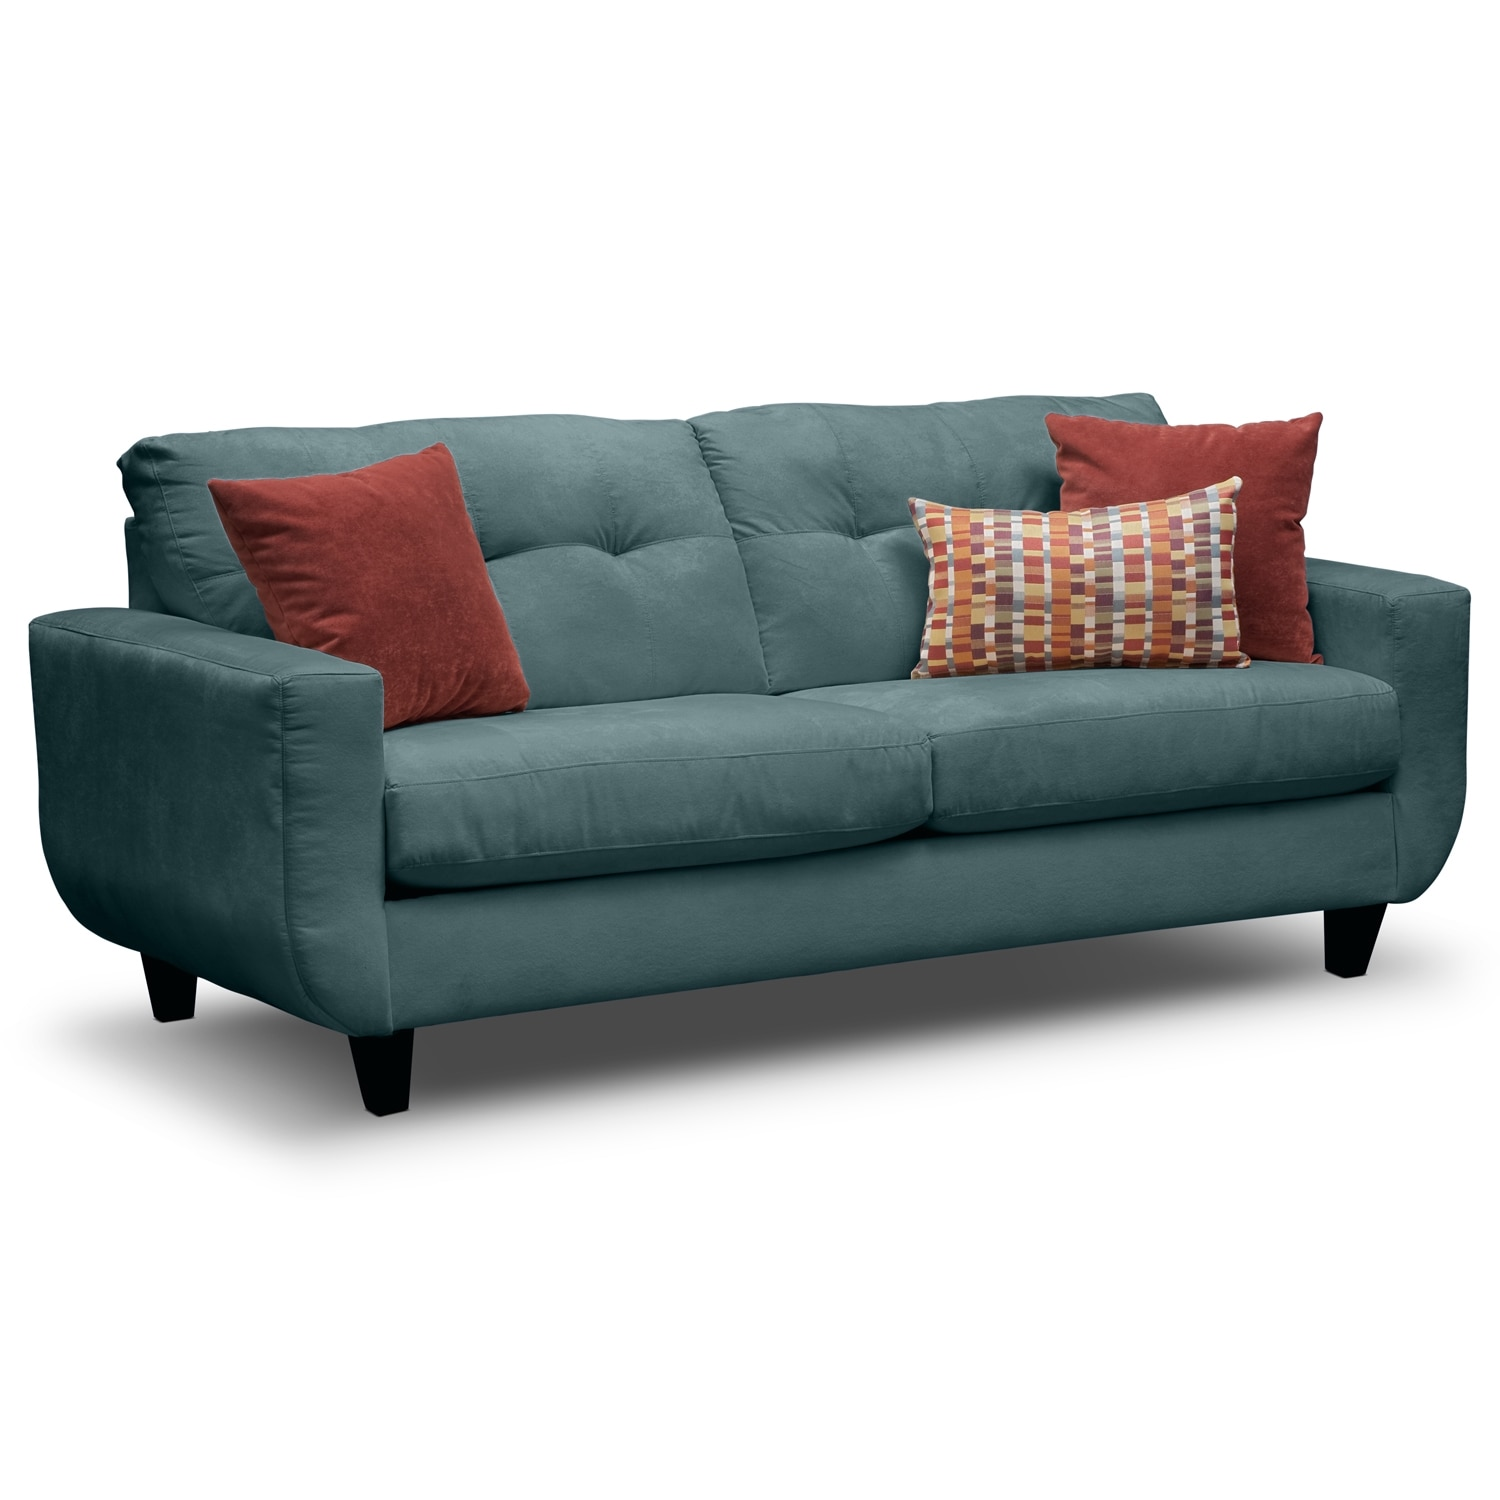 nolan power reclining sofa stainless steel set images sofas & couches | living room seating value city furniture